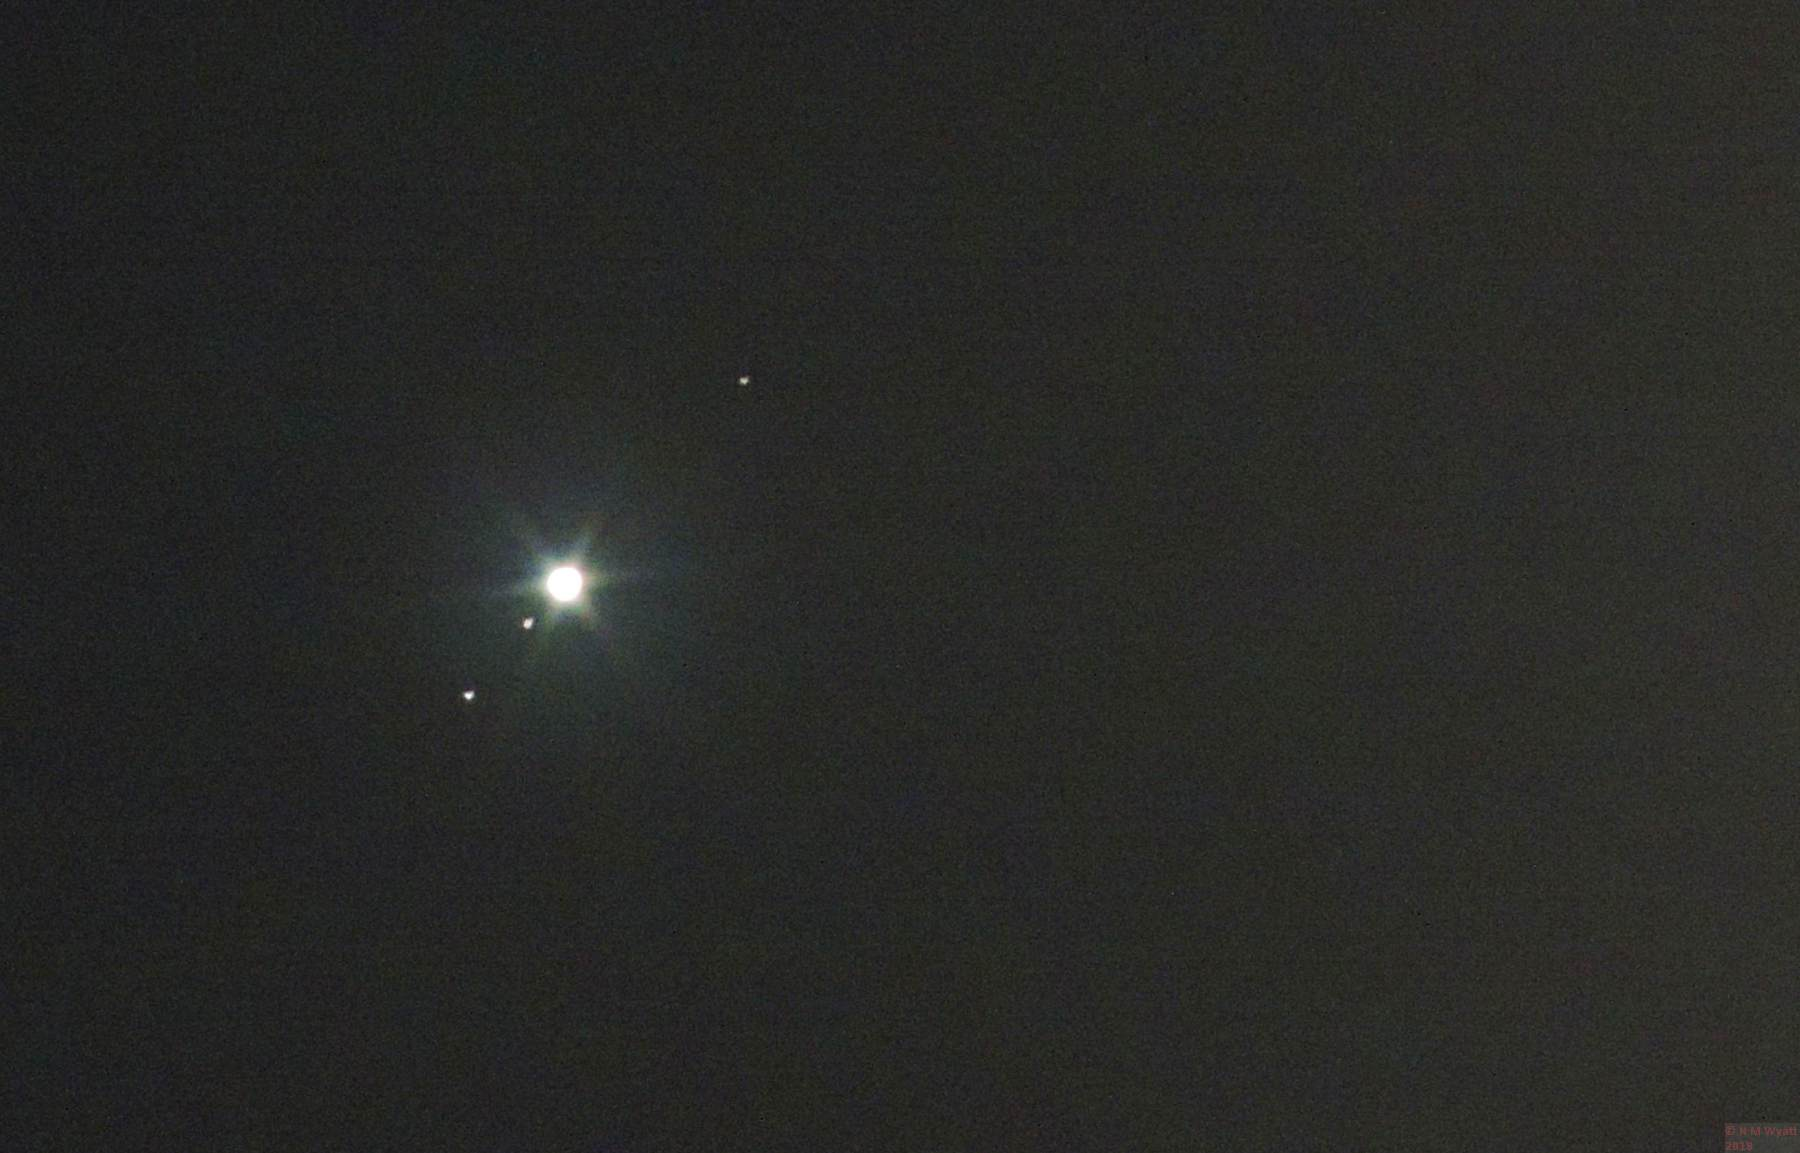 Conjunction of Moon and Jupiter 21 March 2016